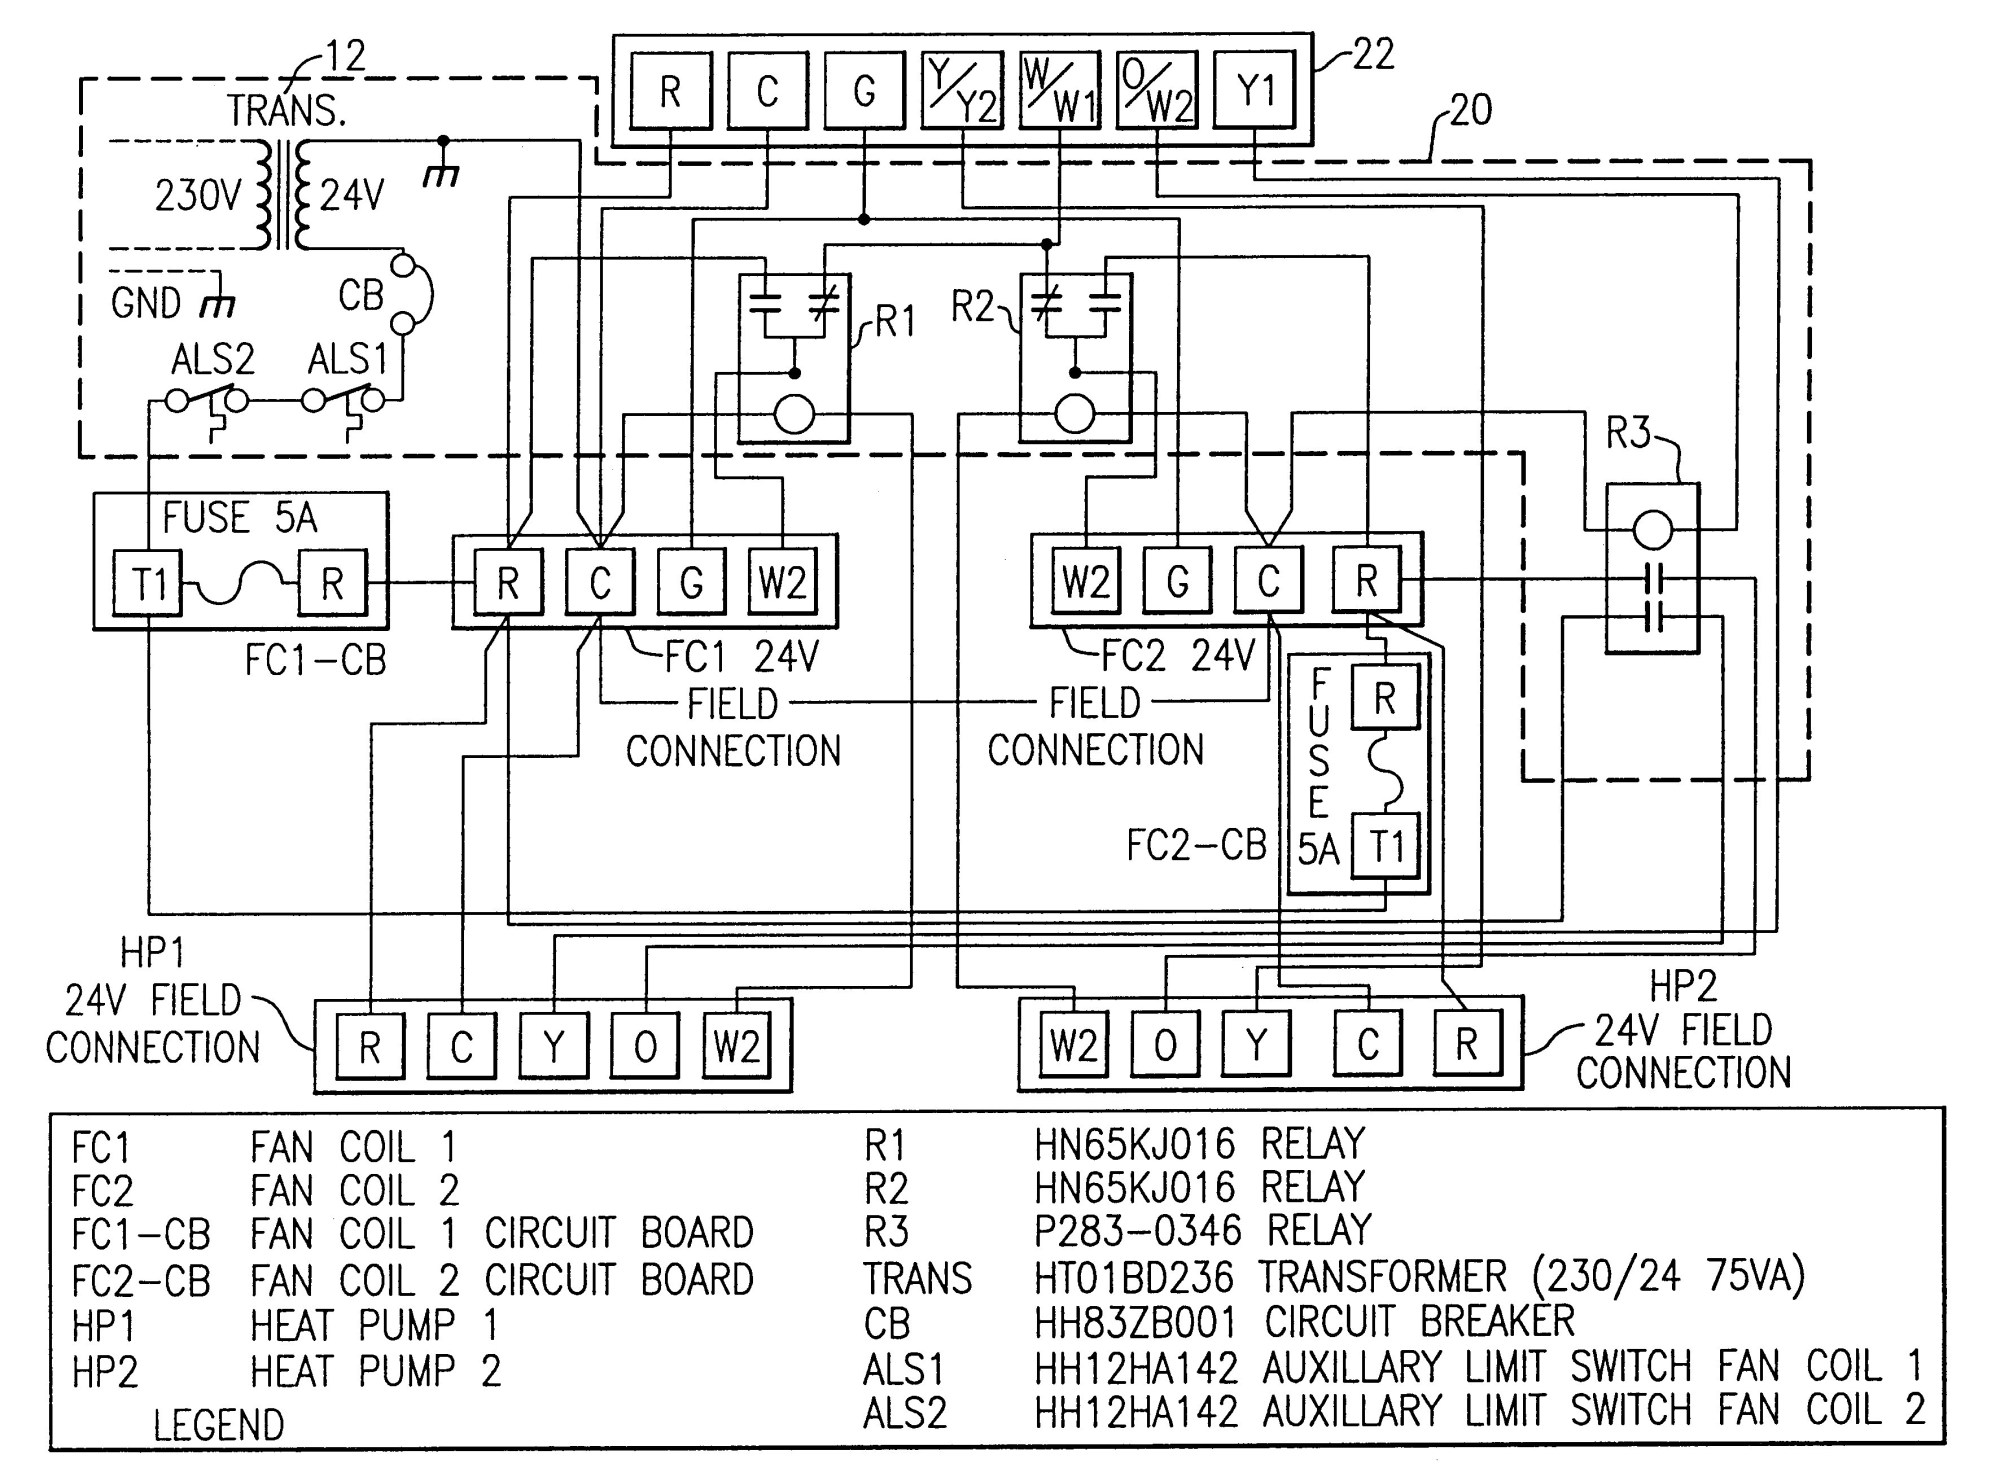 hight resolution of heat york diagram pump 063 wiring 84793c data diagram schematic wiring york diagram furnace 035 45350d000